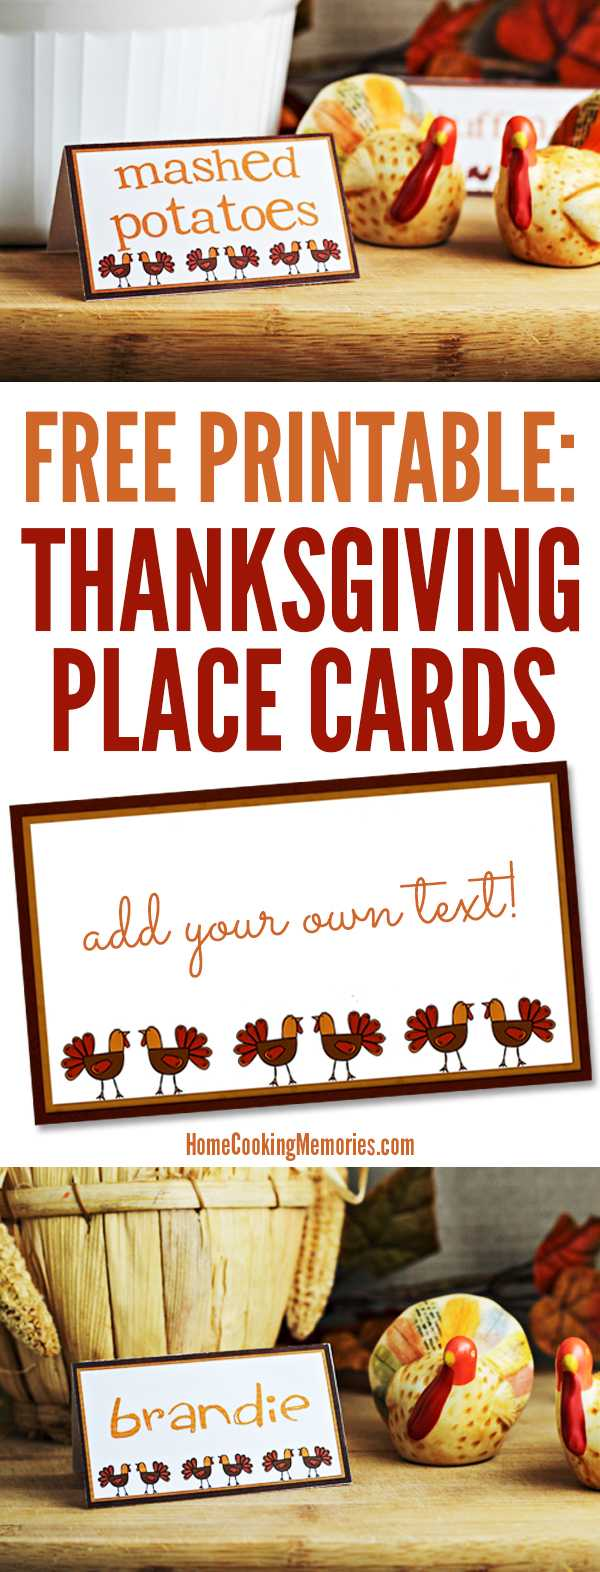 Free Printables: Thanksgiving Place Cards - Home Cooking With Regard To Thanksgiving Place Cards Template